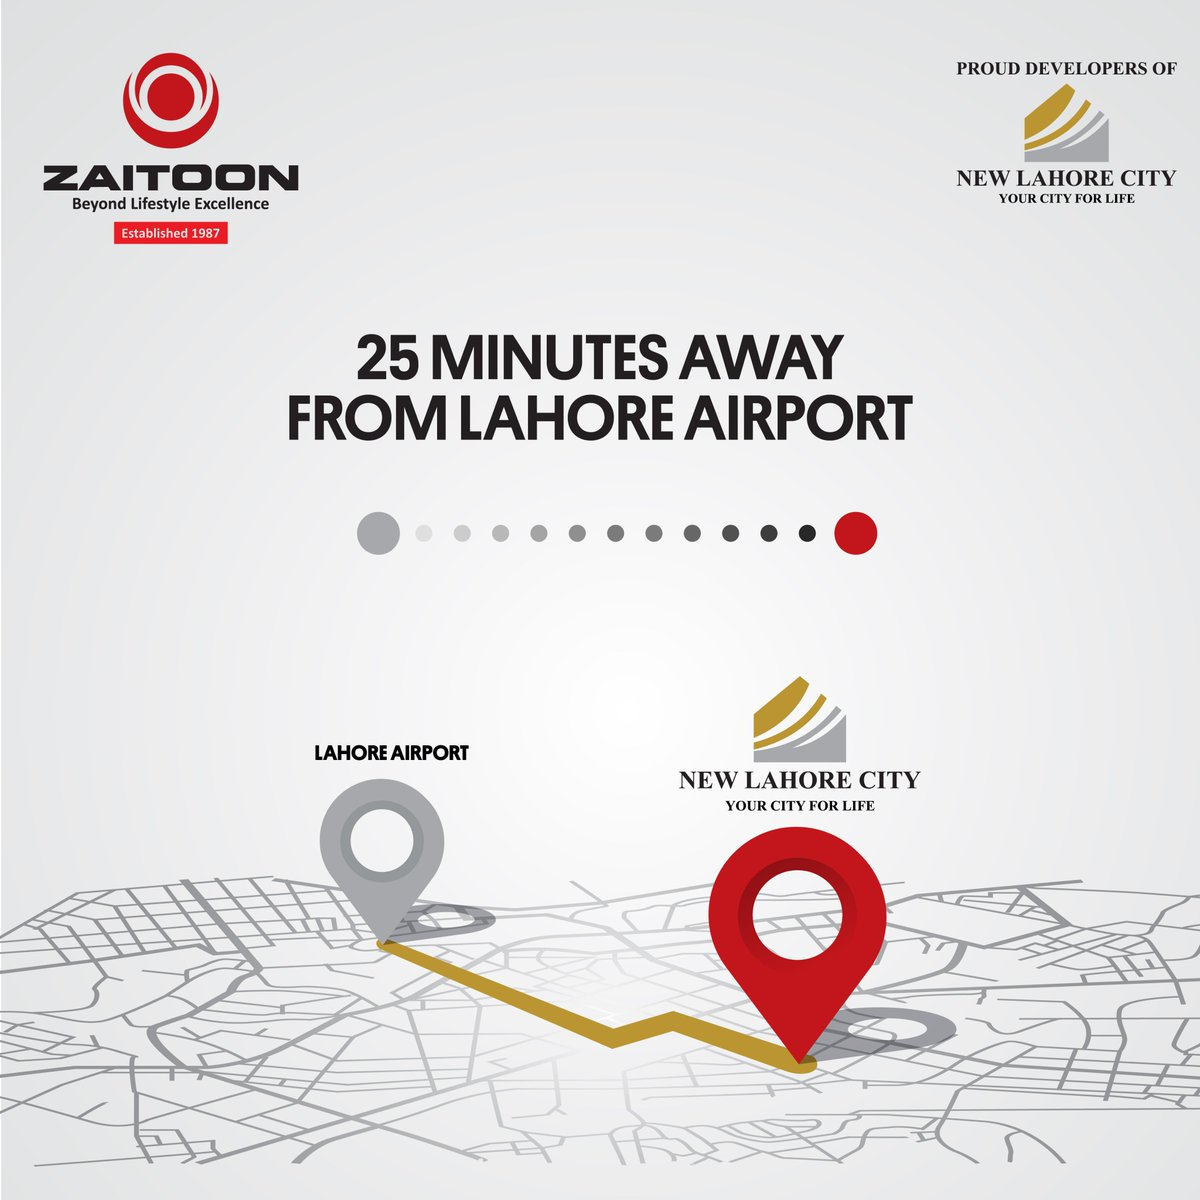 hight resolution of new lahore city is located at just a 25 minute drive from the airport is filled with all the luxuries life has to offer